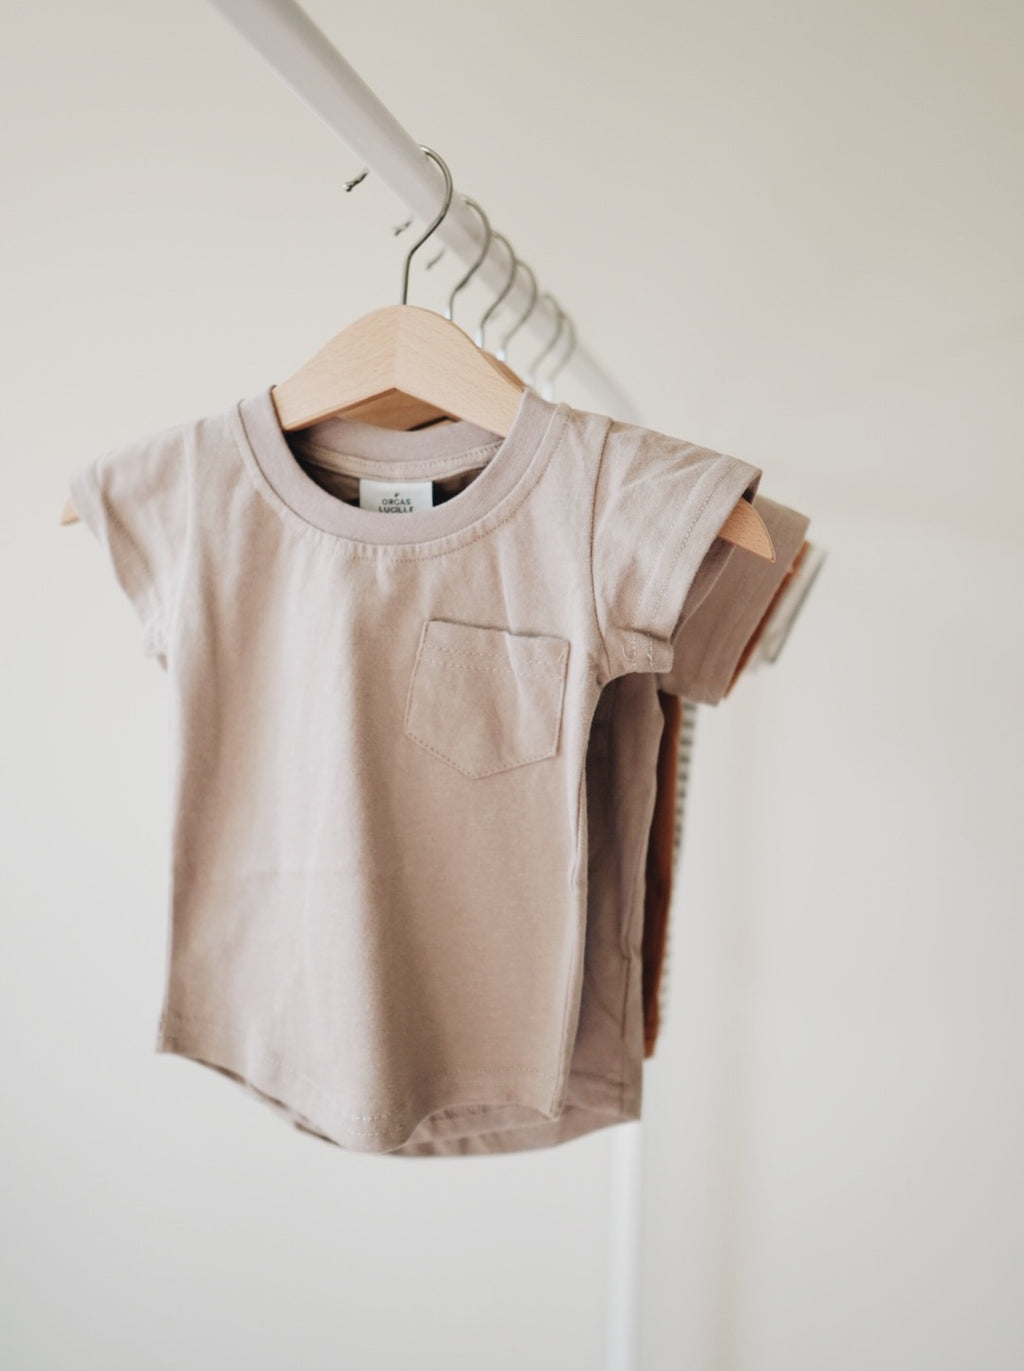 Brushed Cotton Tee - Mushroom